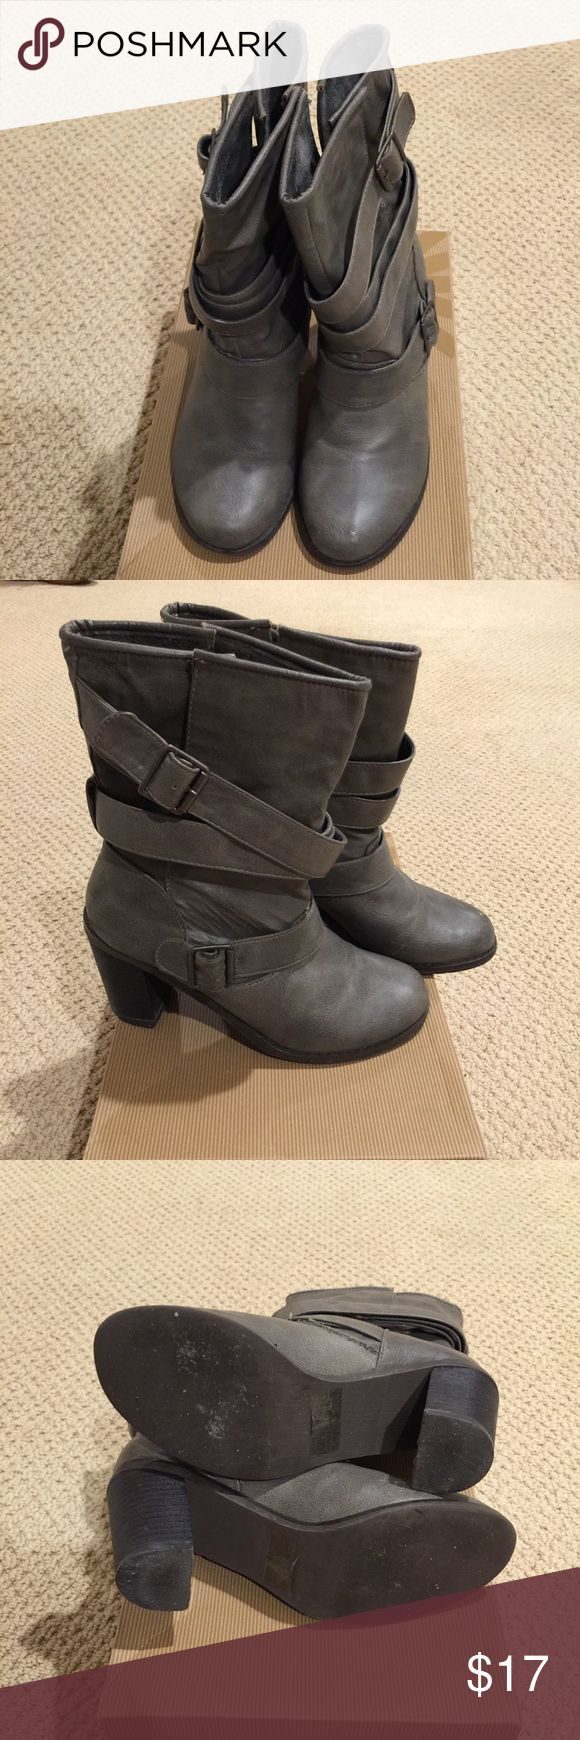 Stylish ladies ankle boots size 6M Very stylish ankle boots.  Only worn twice. Man made material. Size 6M. Minor flaws showed in the picture. Got them from Macy's. Macy's Shoes Ankle Boots & Booties